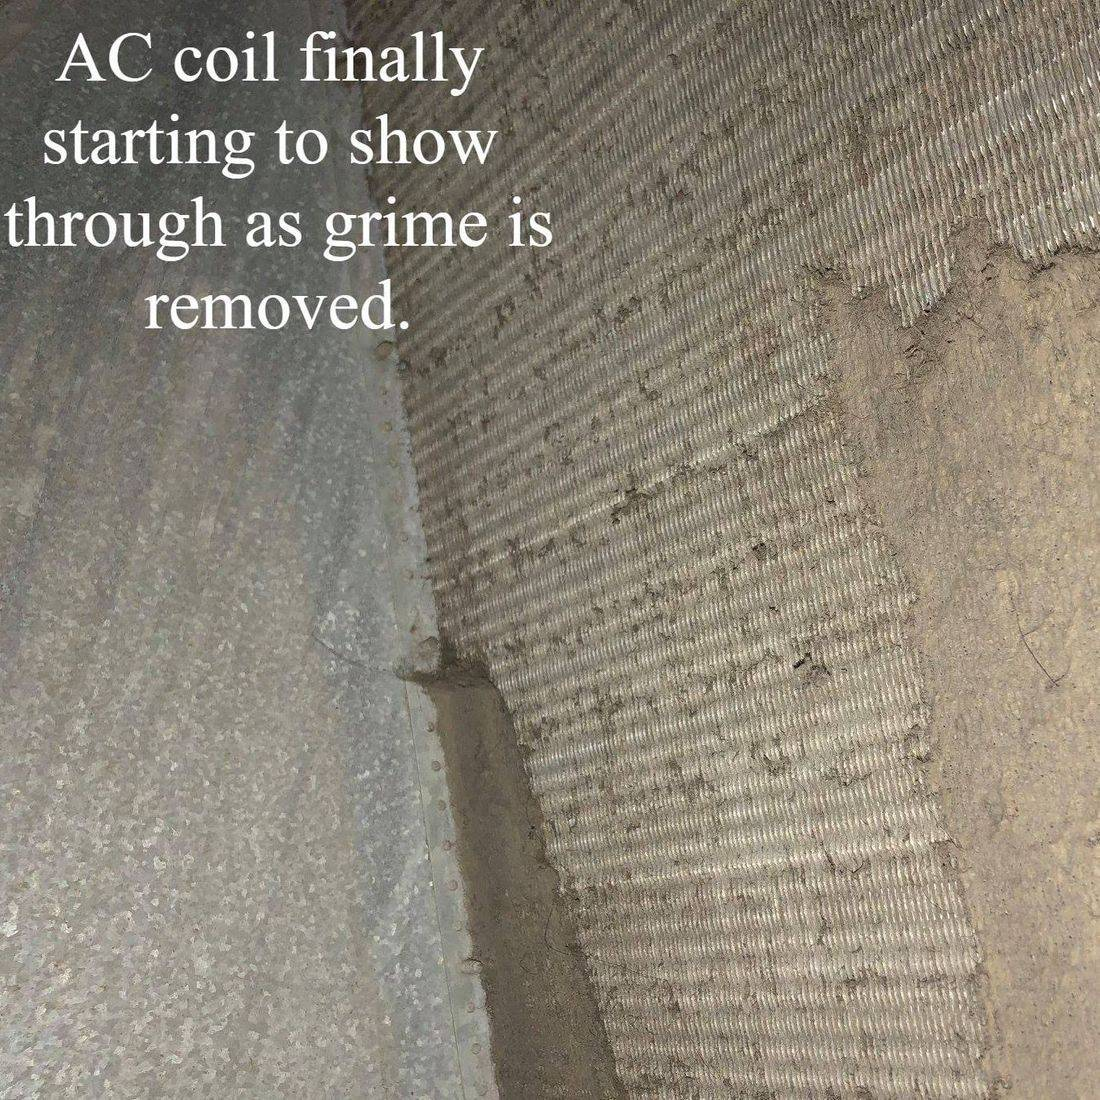 ac coil cleaning, ac coil maintenance, ac coil clogged